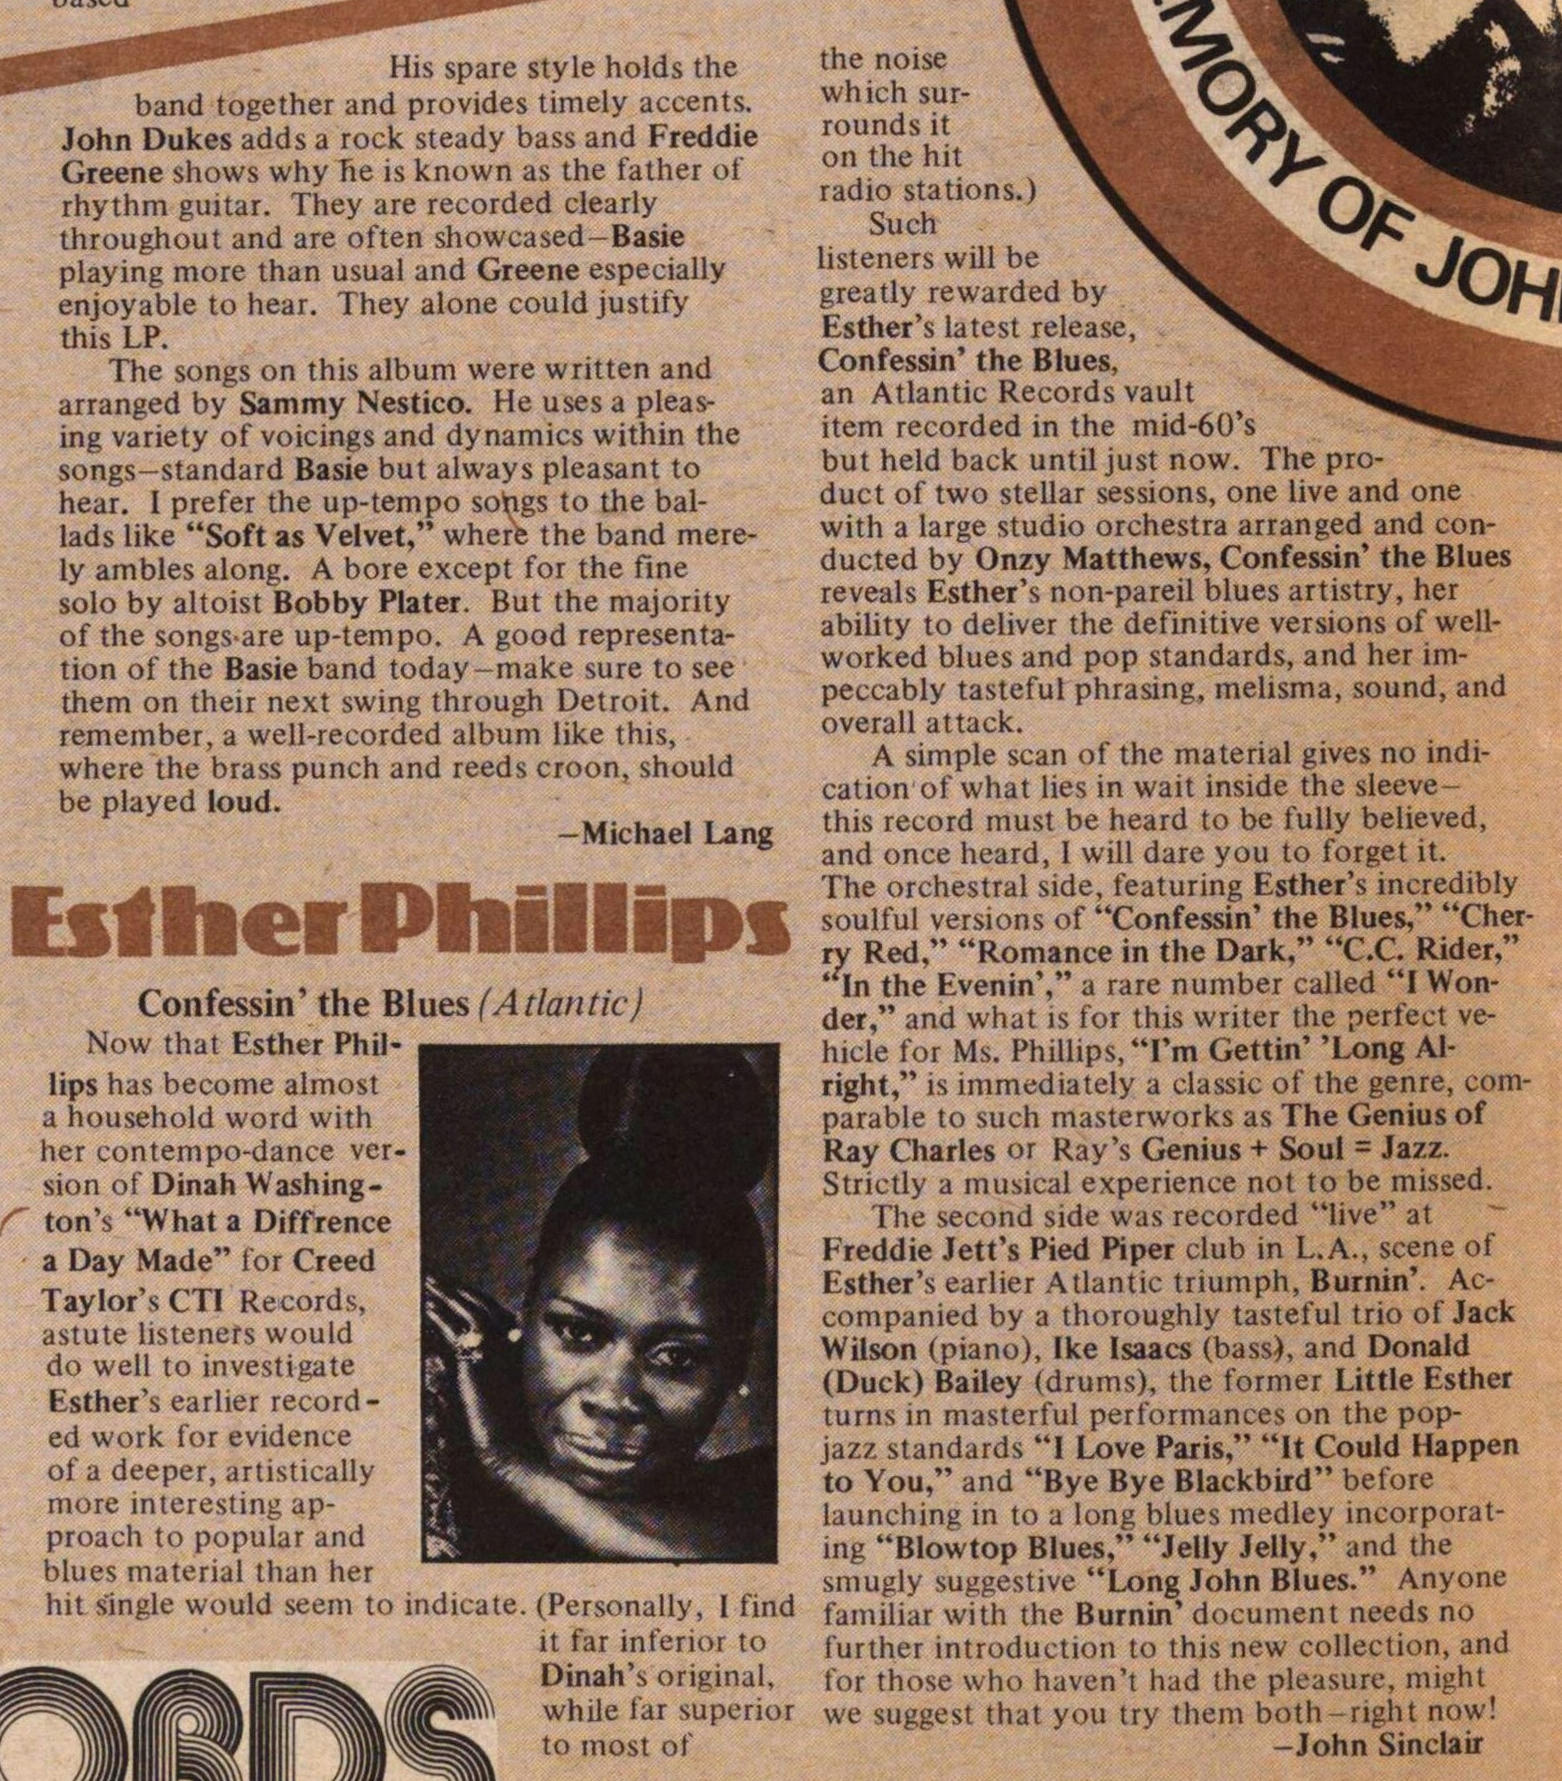 Esther Phillips image